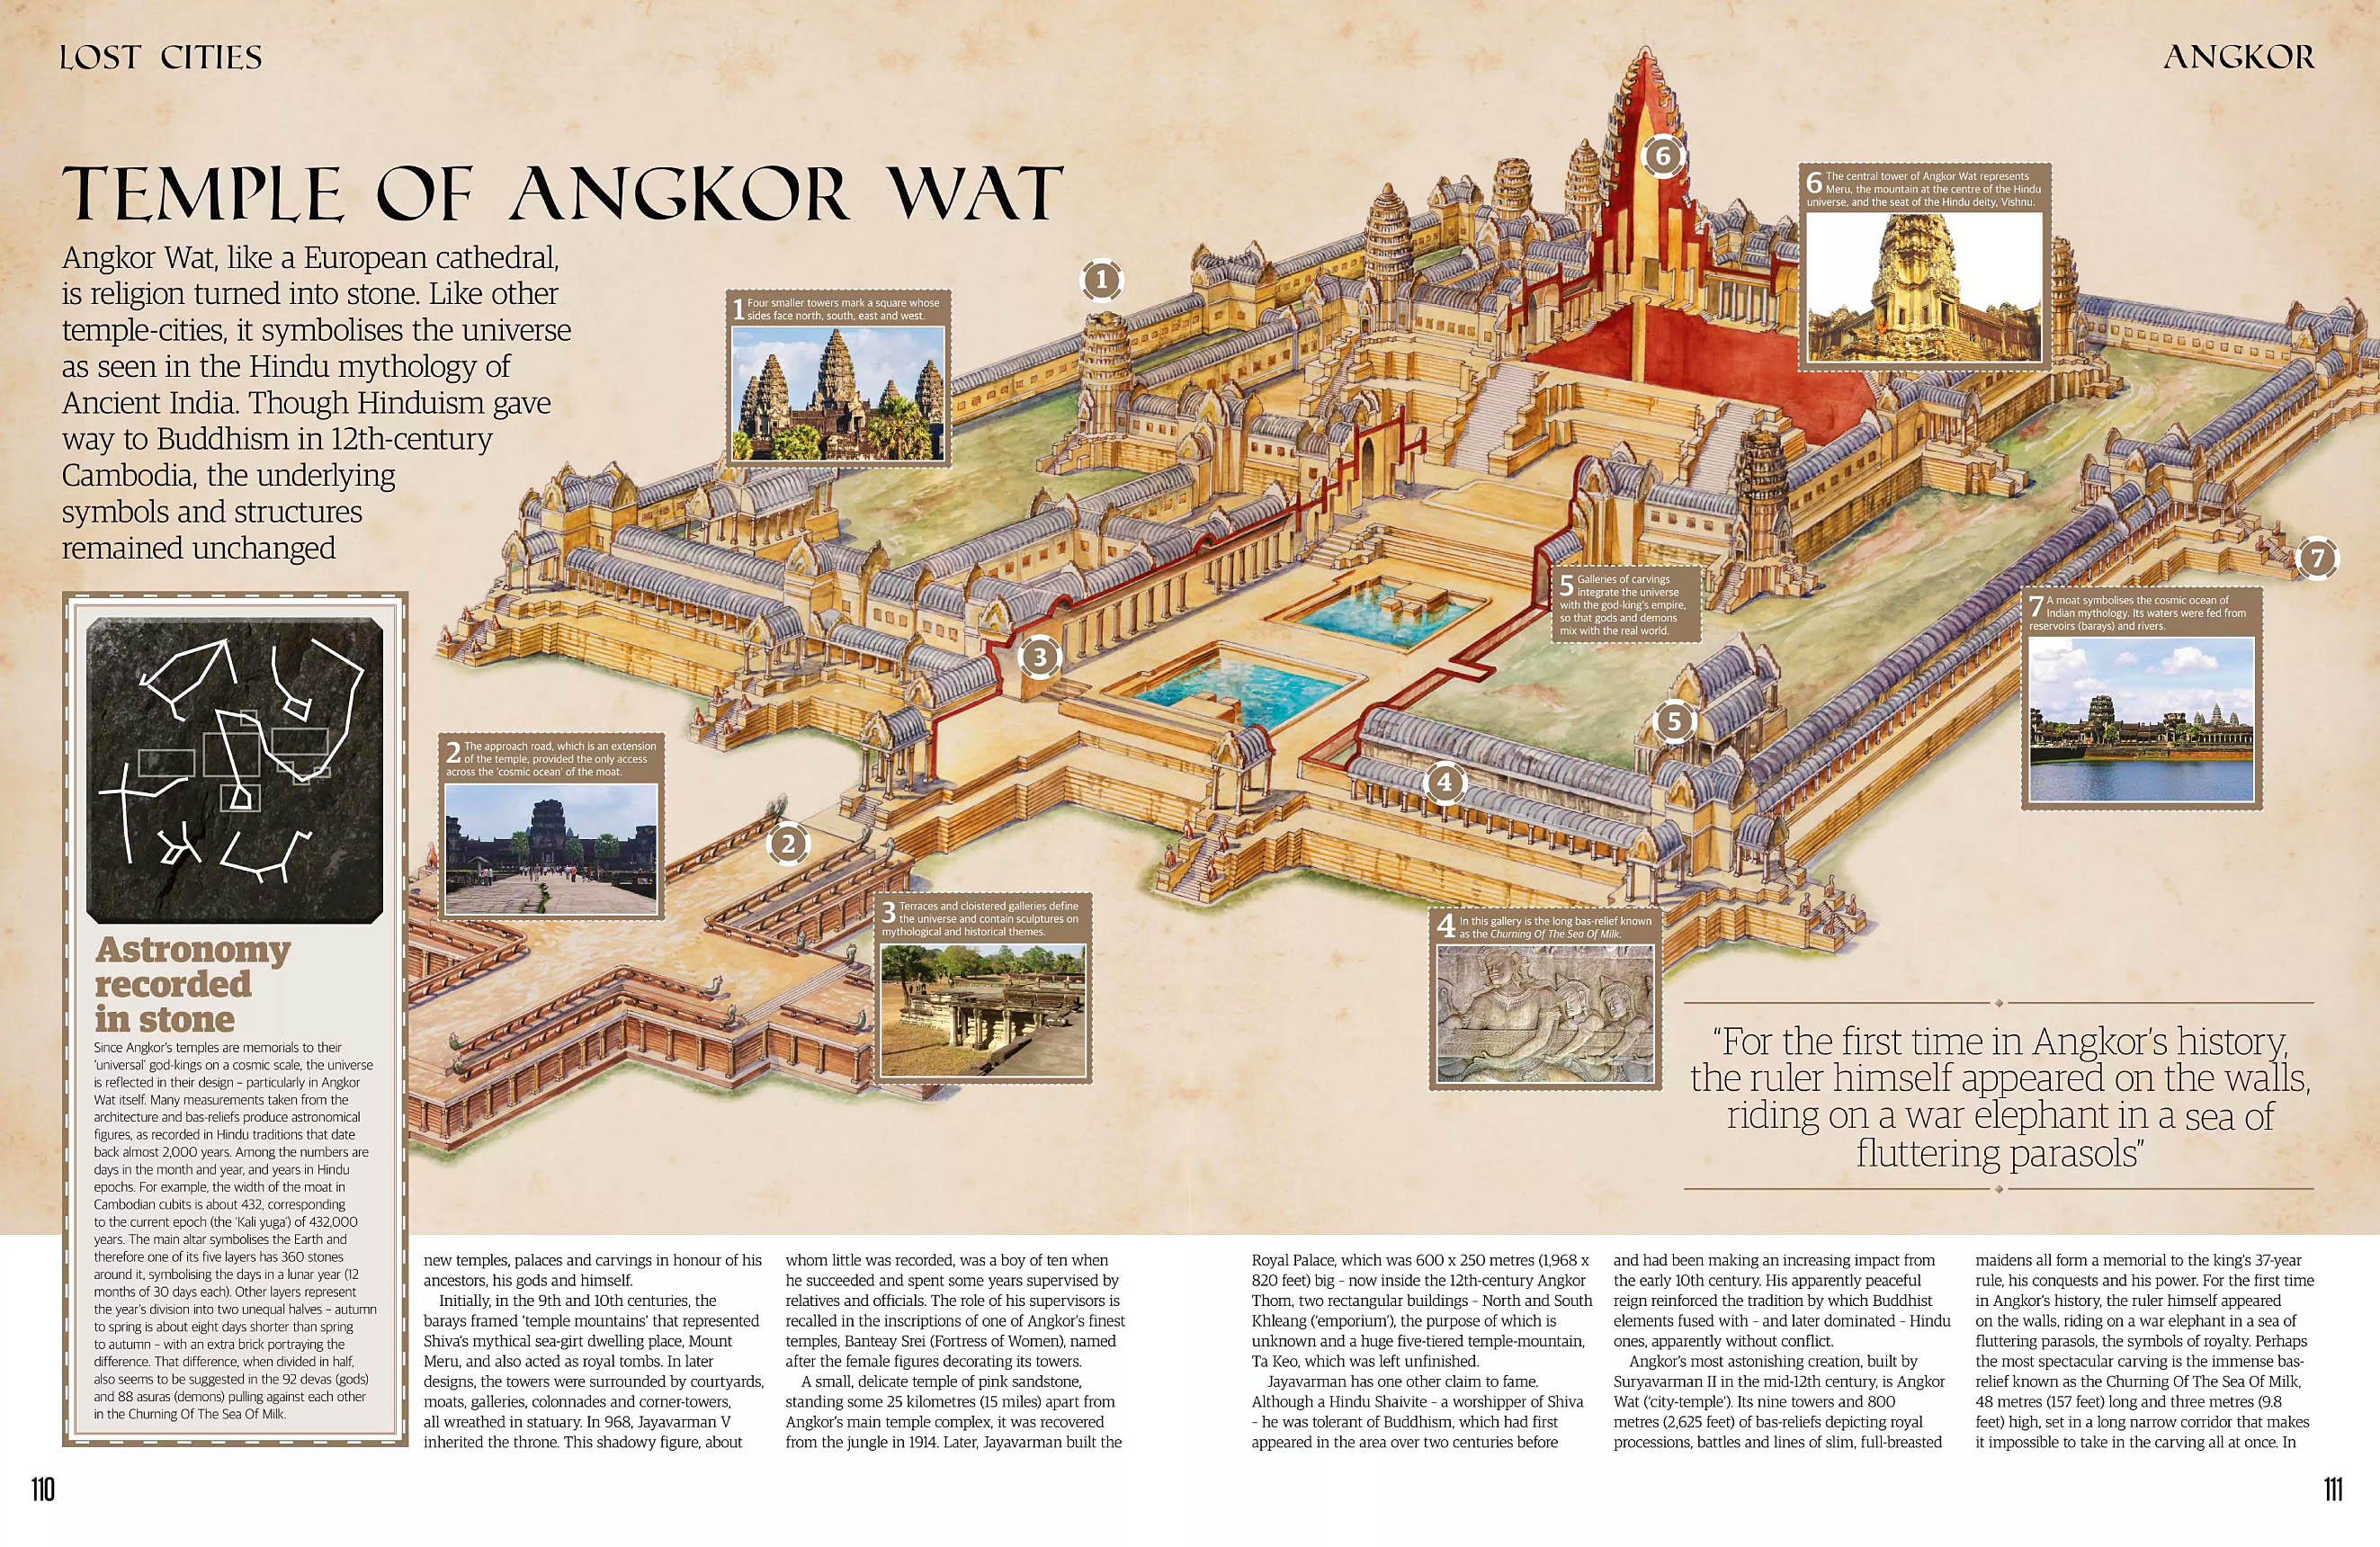 All About History - Lost Cities 3rd Ed 2020 Angkor 04.jpg